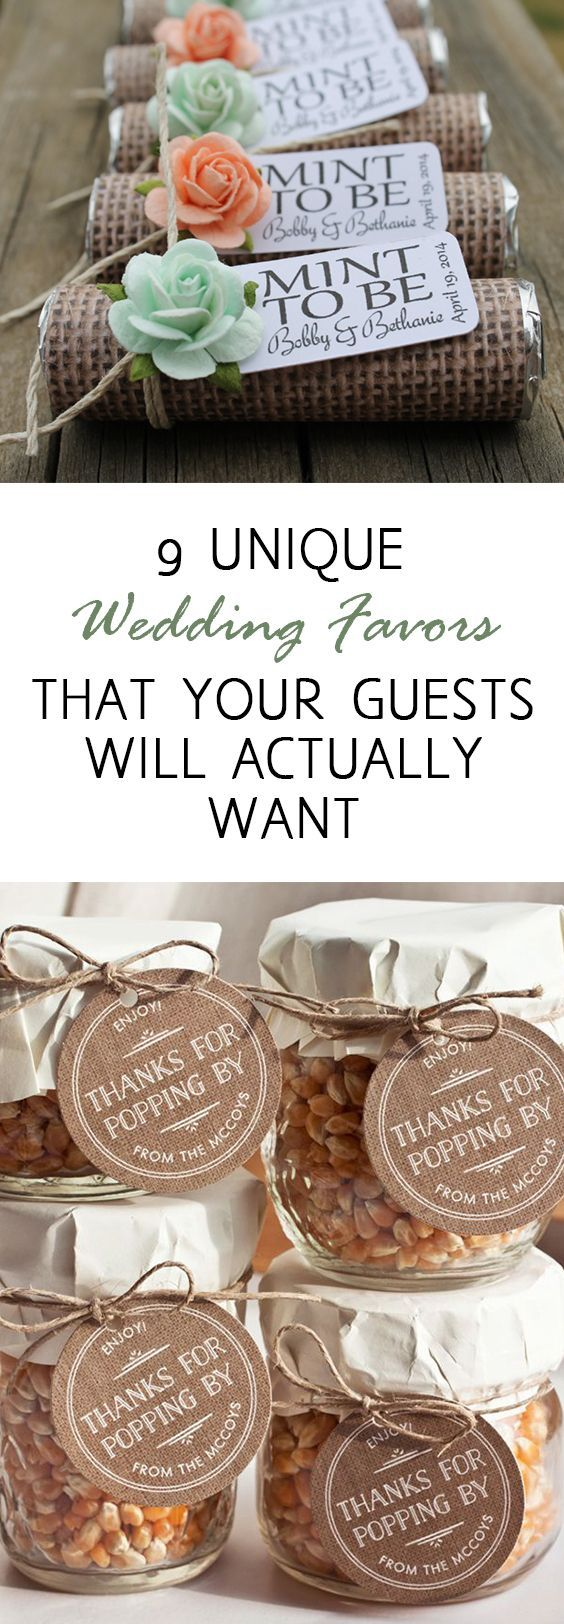 393 best Wedding Party Favors images on Pinterest | Weddings, Winter ...